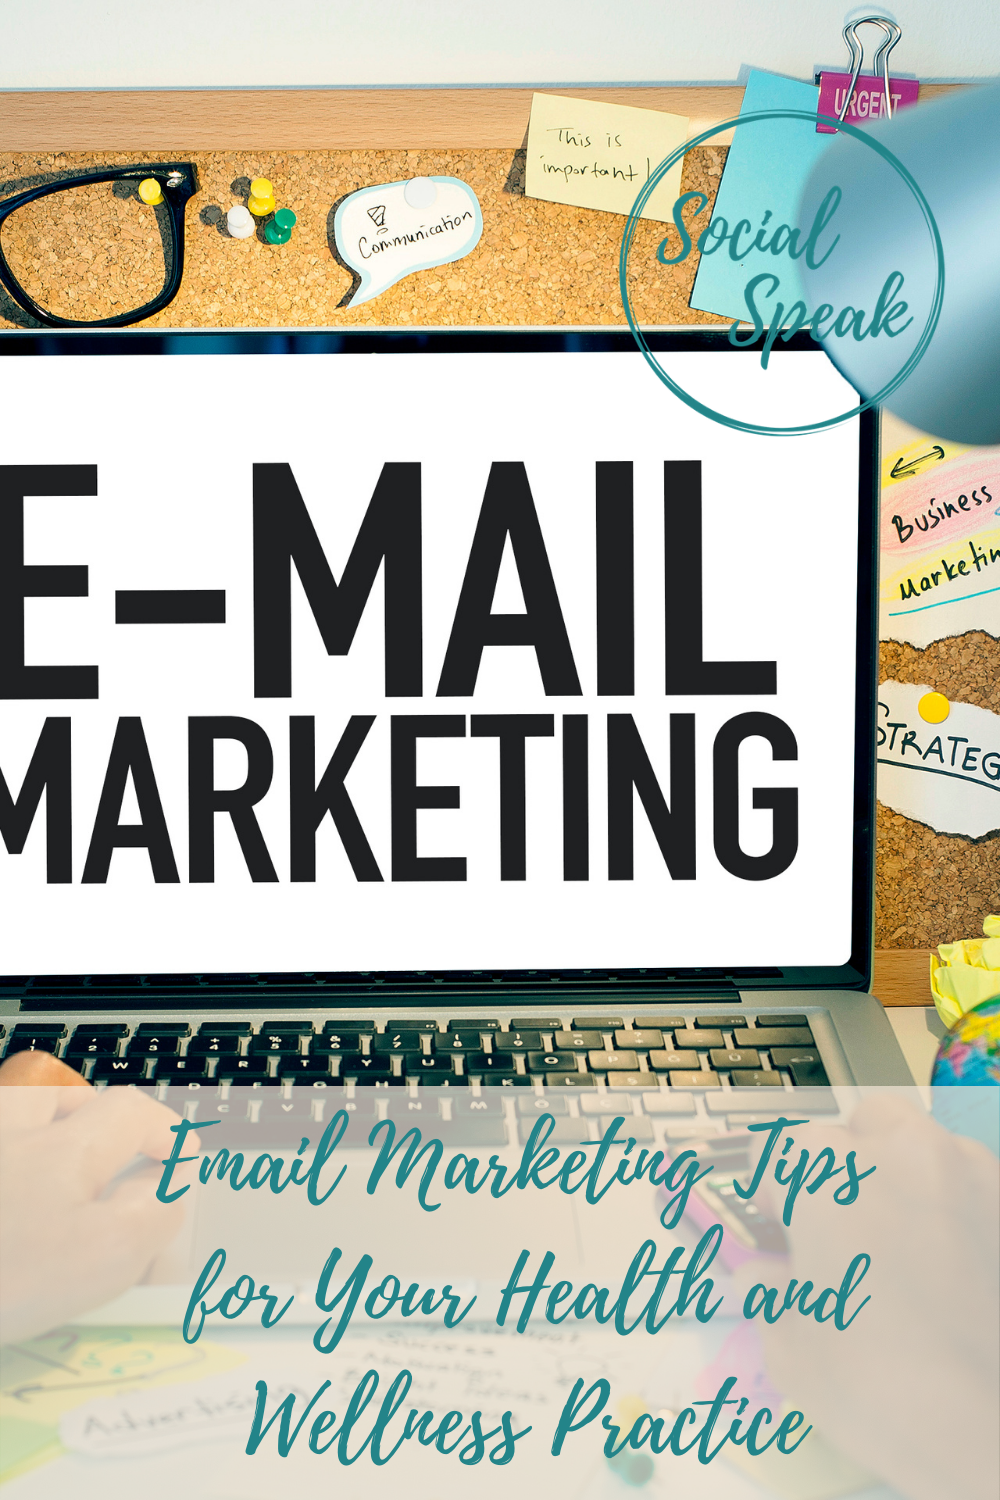 Email Marketing Tips for Your Health and Wellness Practice